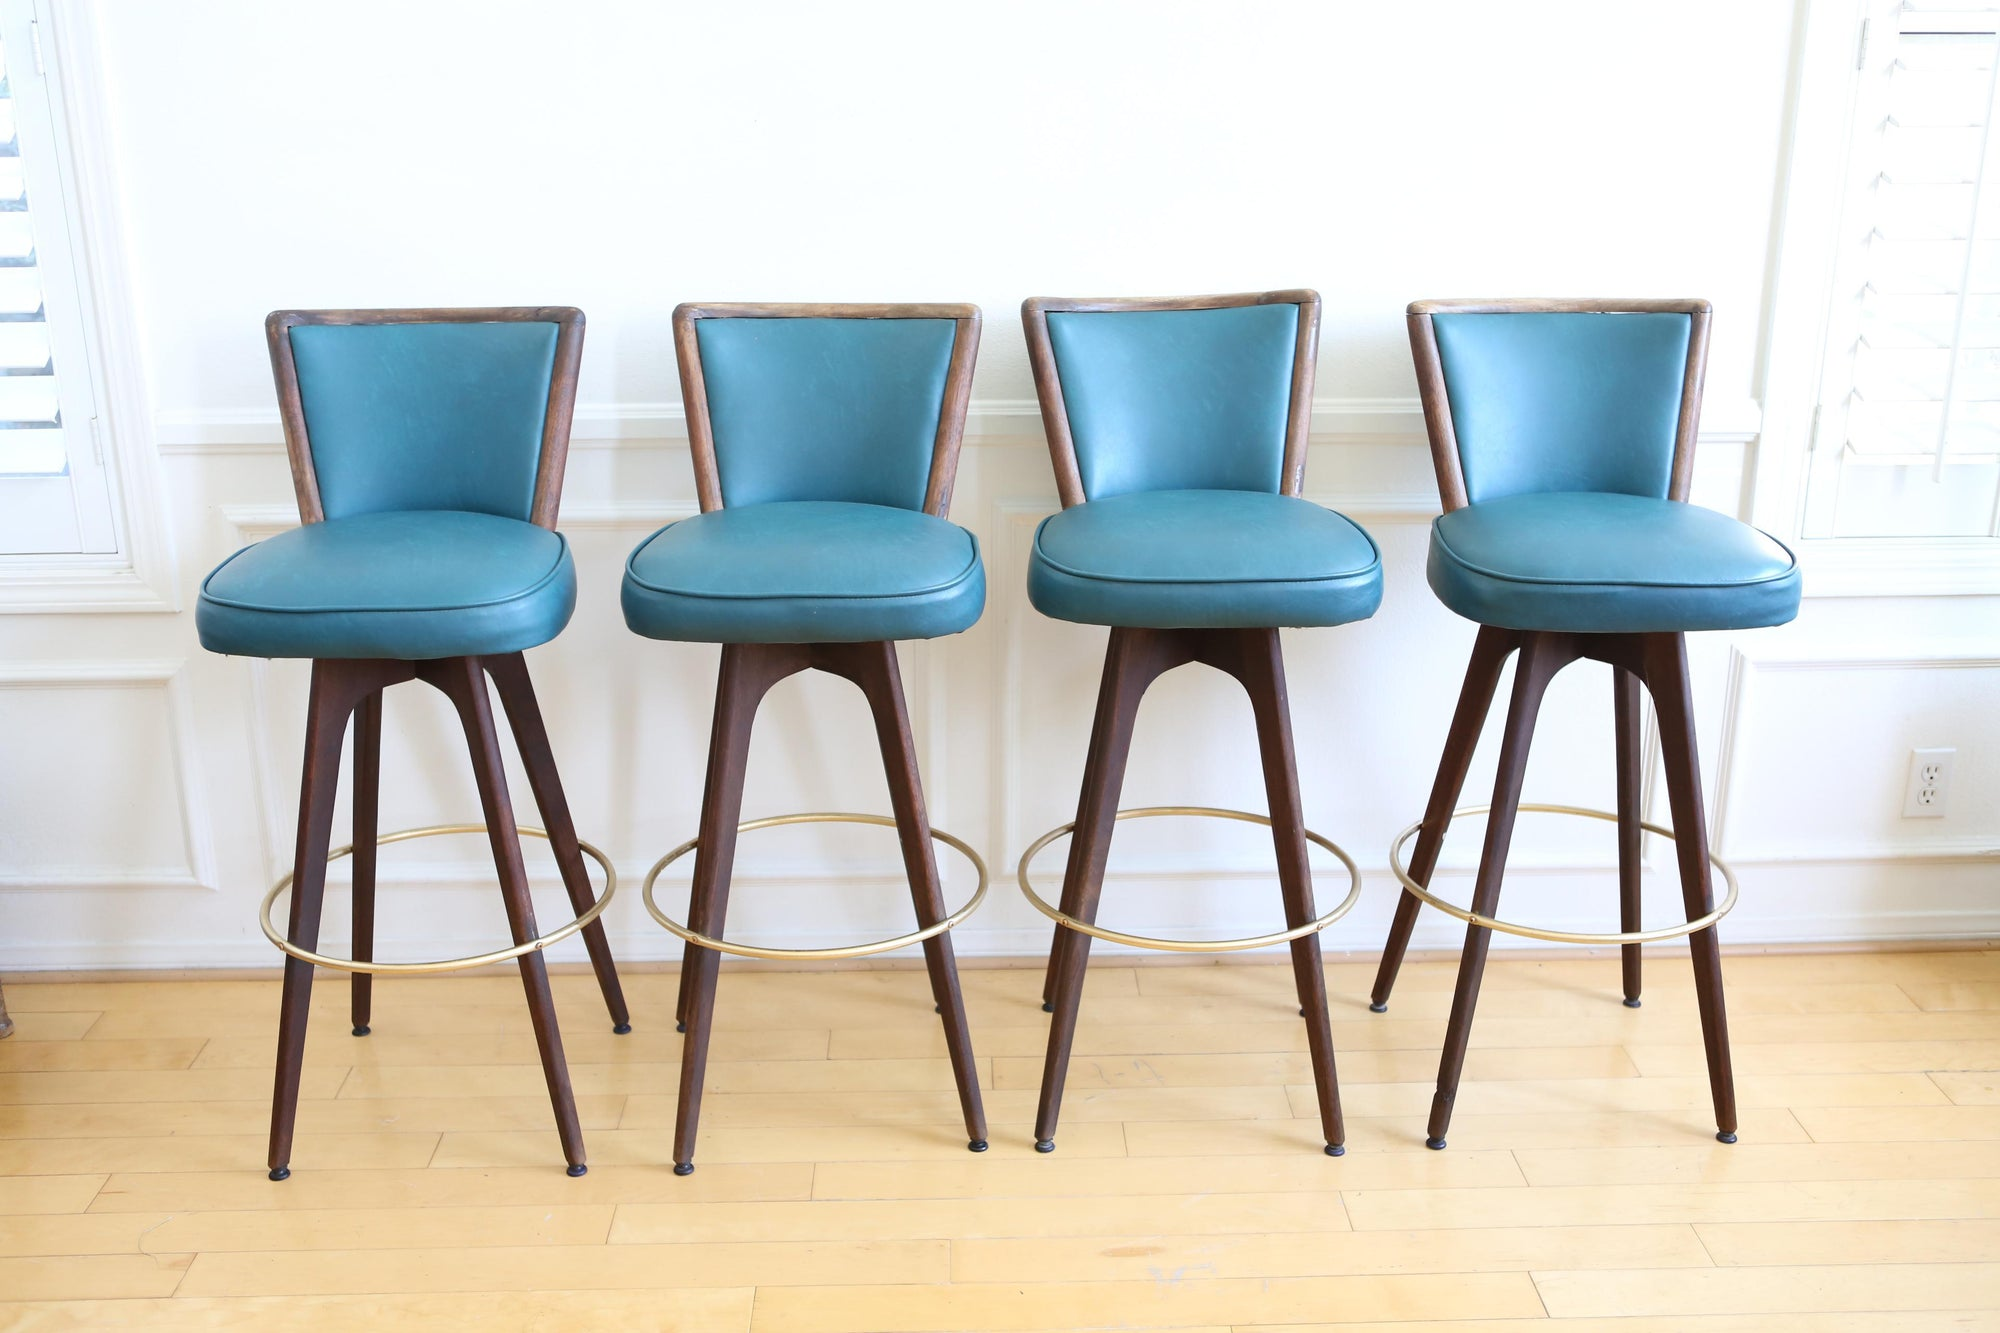 Surprising Mid Century Modern Vintage Swivel Bar Counter Stools Set Squirreltailoven Fun Painted Chair Ideas Images Squirreltailovenorg